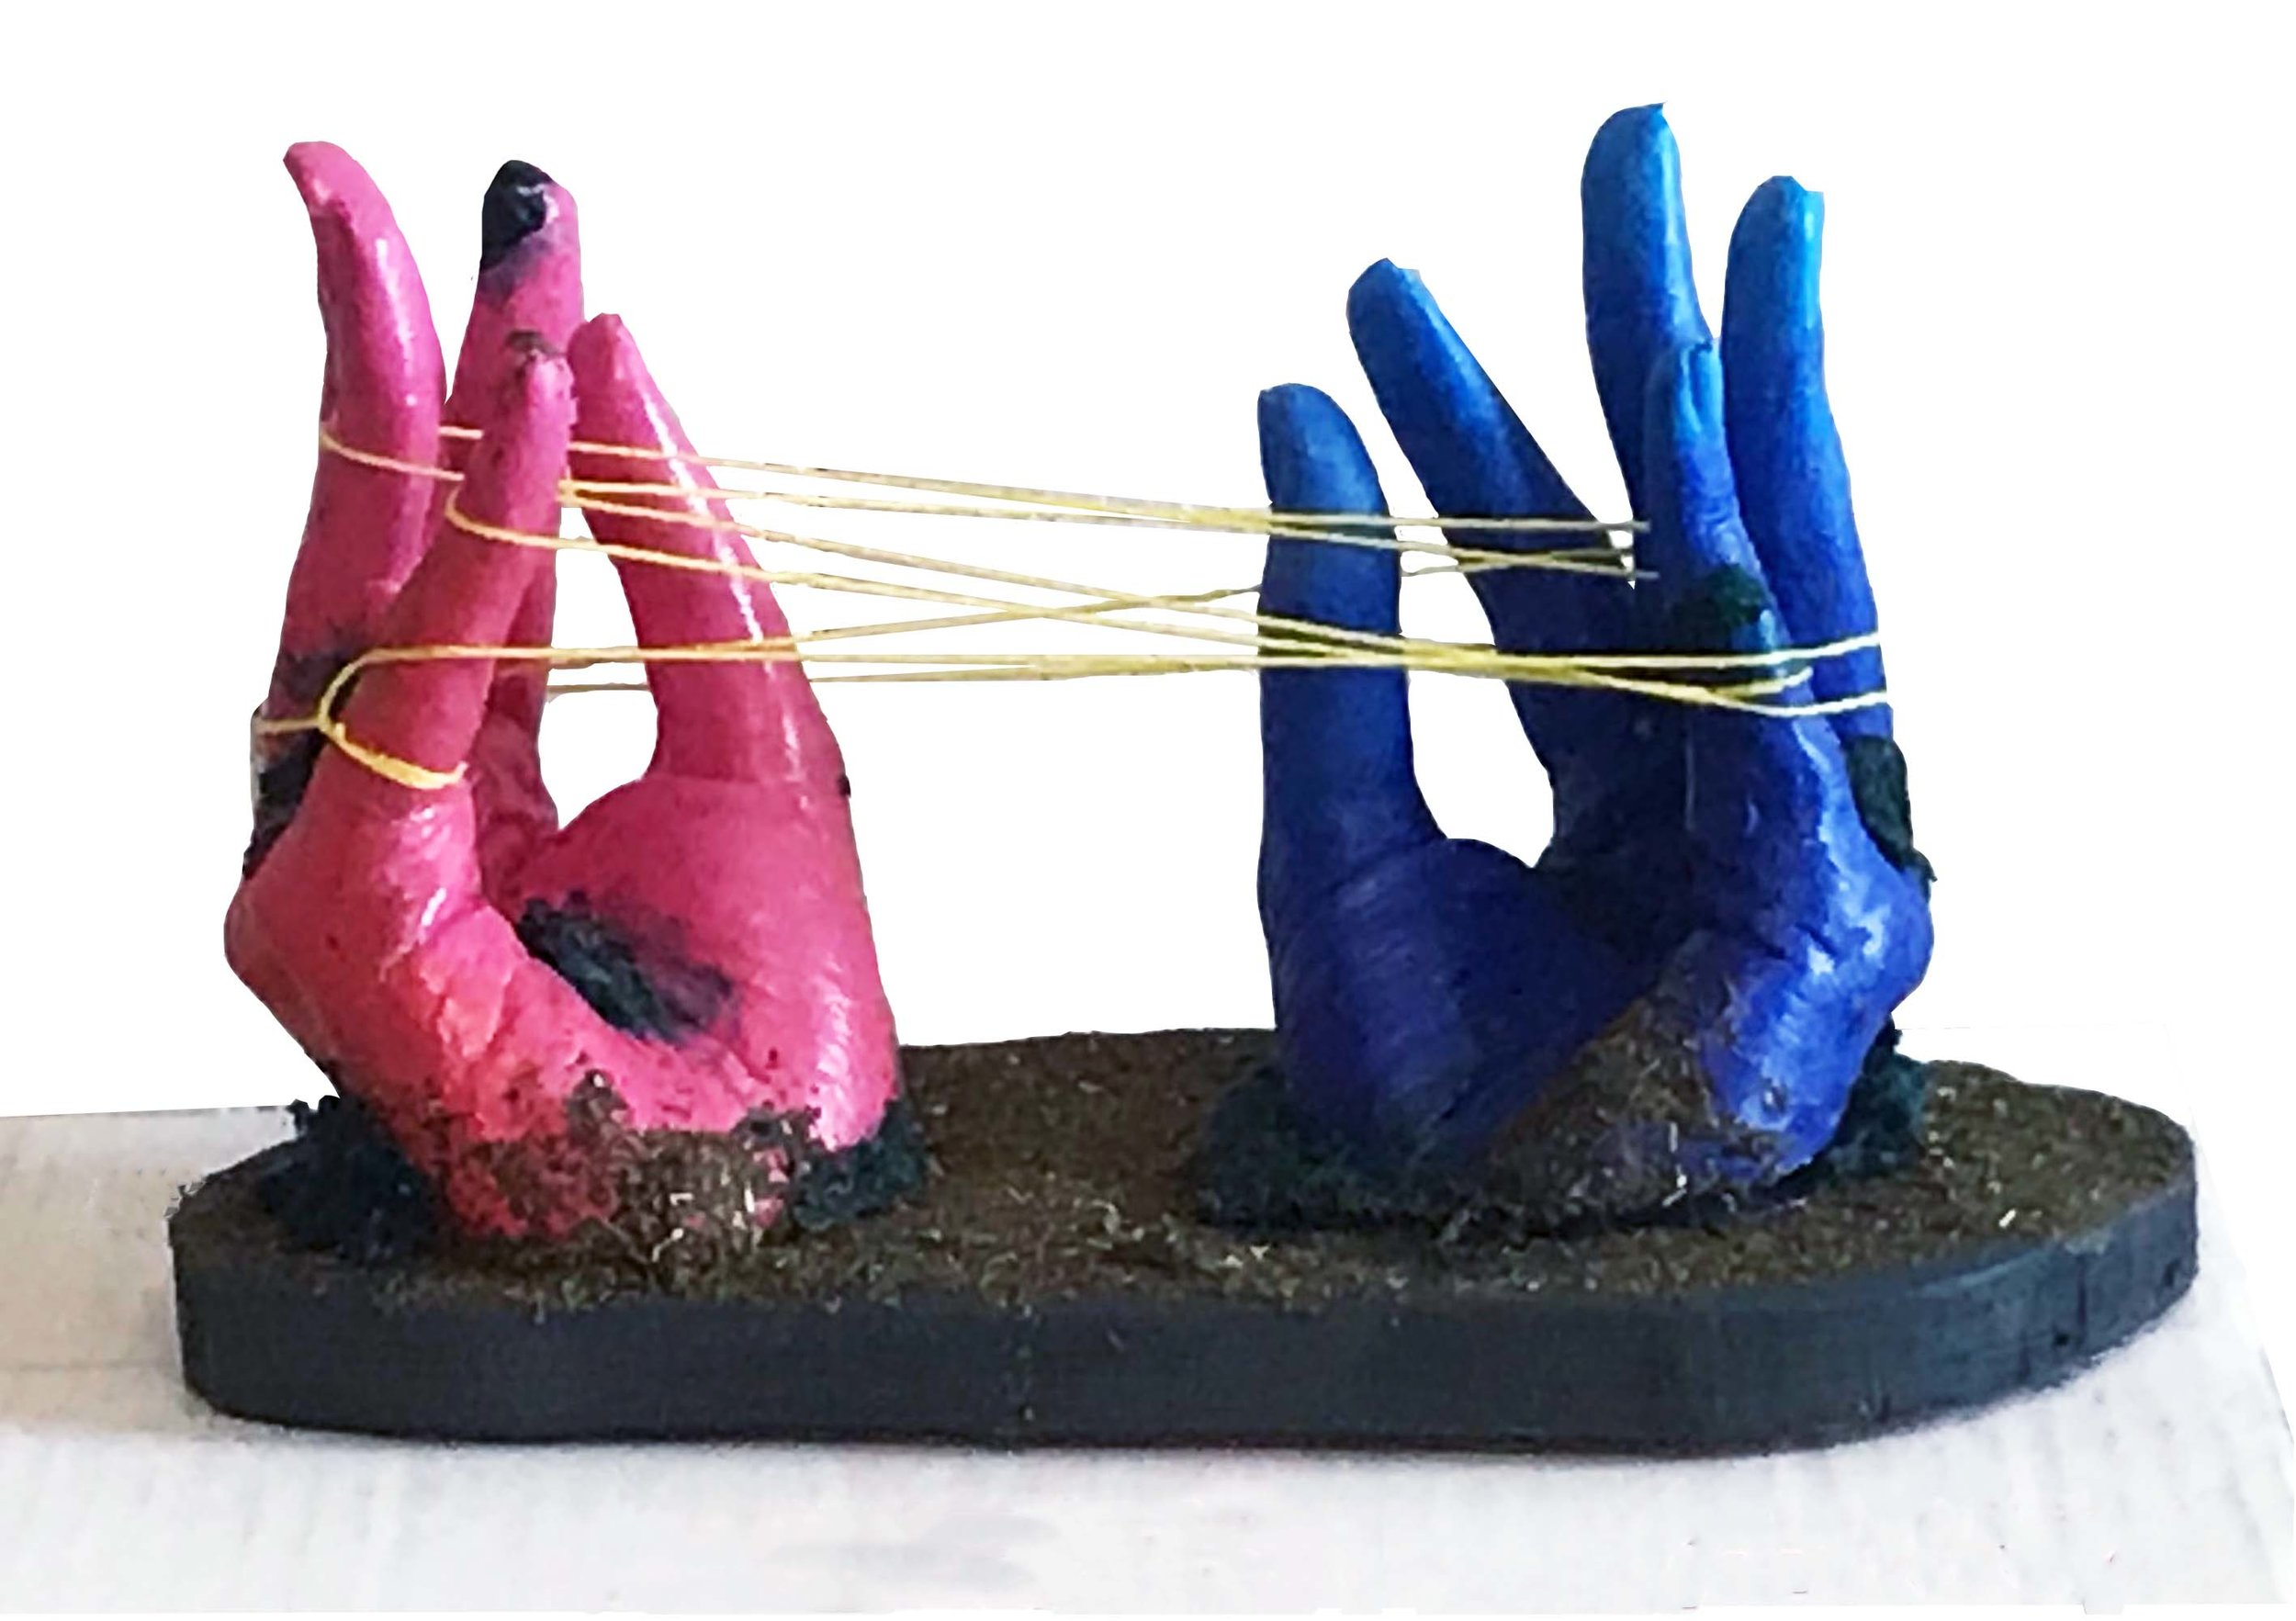 Final   Student made a mixed media sculpture of hands play cats in the cradle. She was exploring the dichotomy between interconnectivity and fragility that exists in the universe.  Plaster, String, and Moss